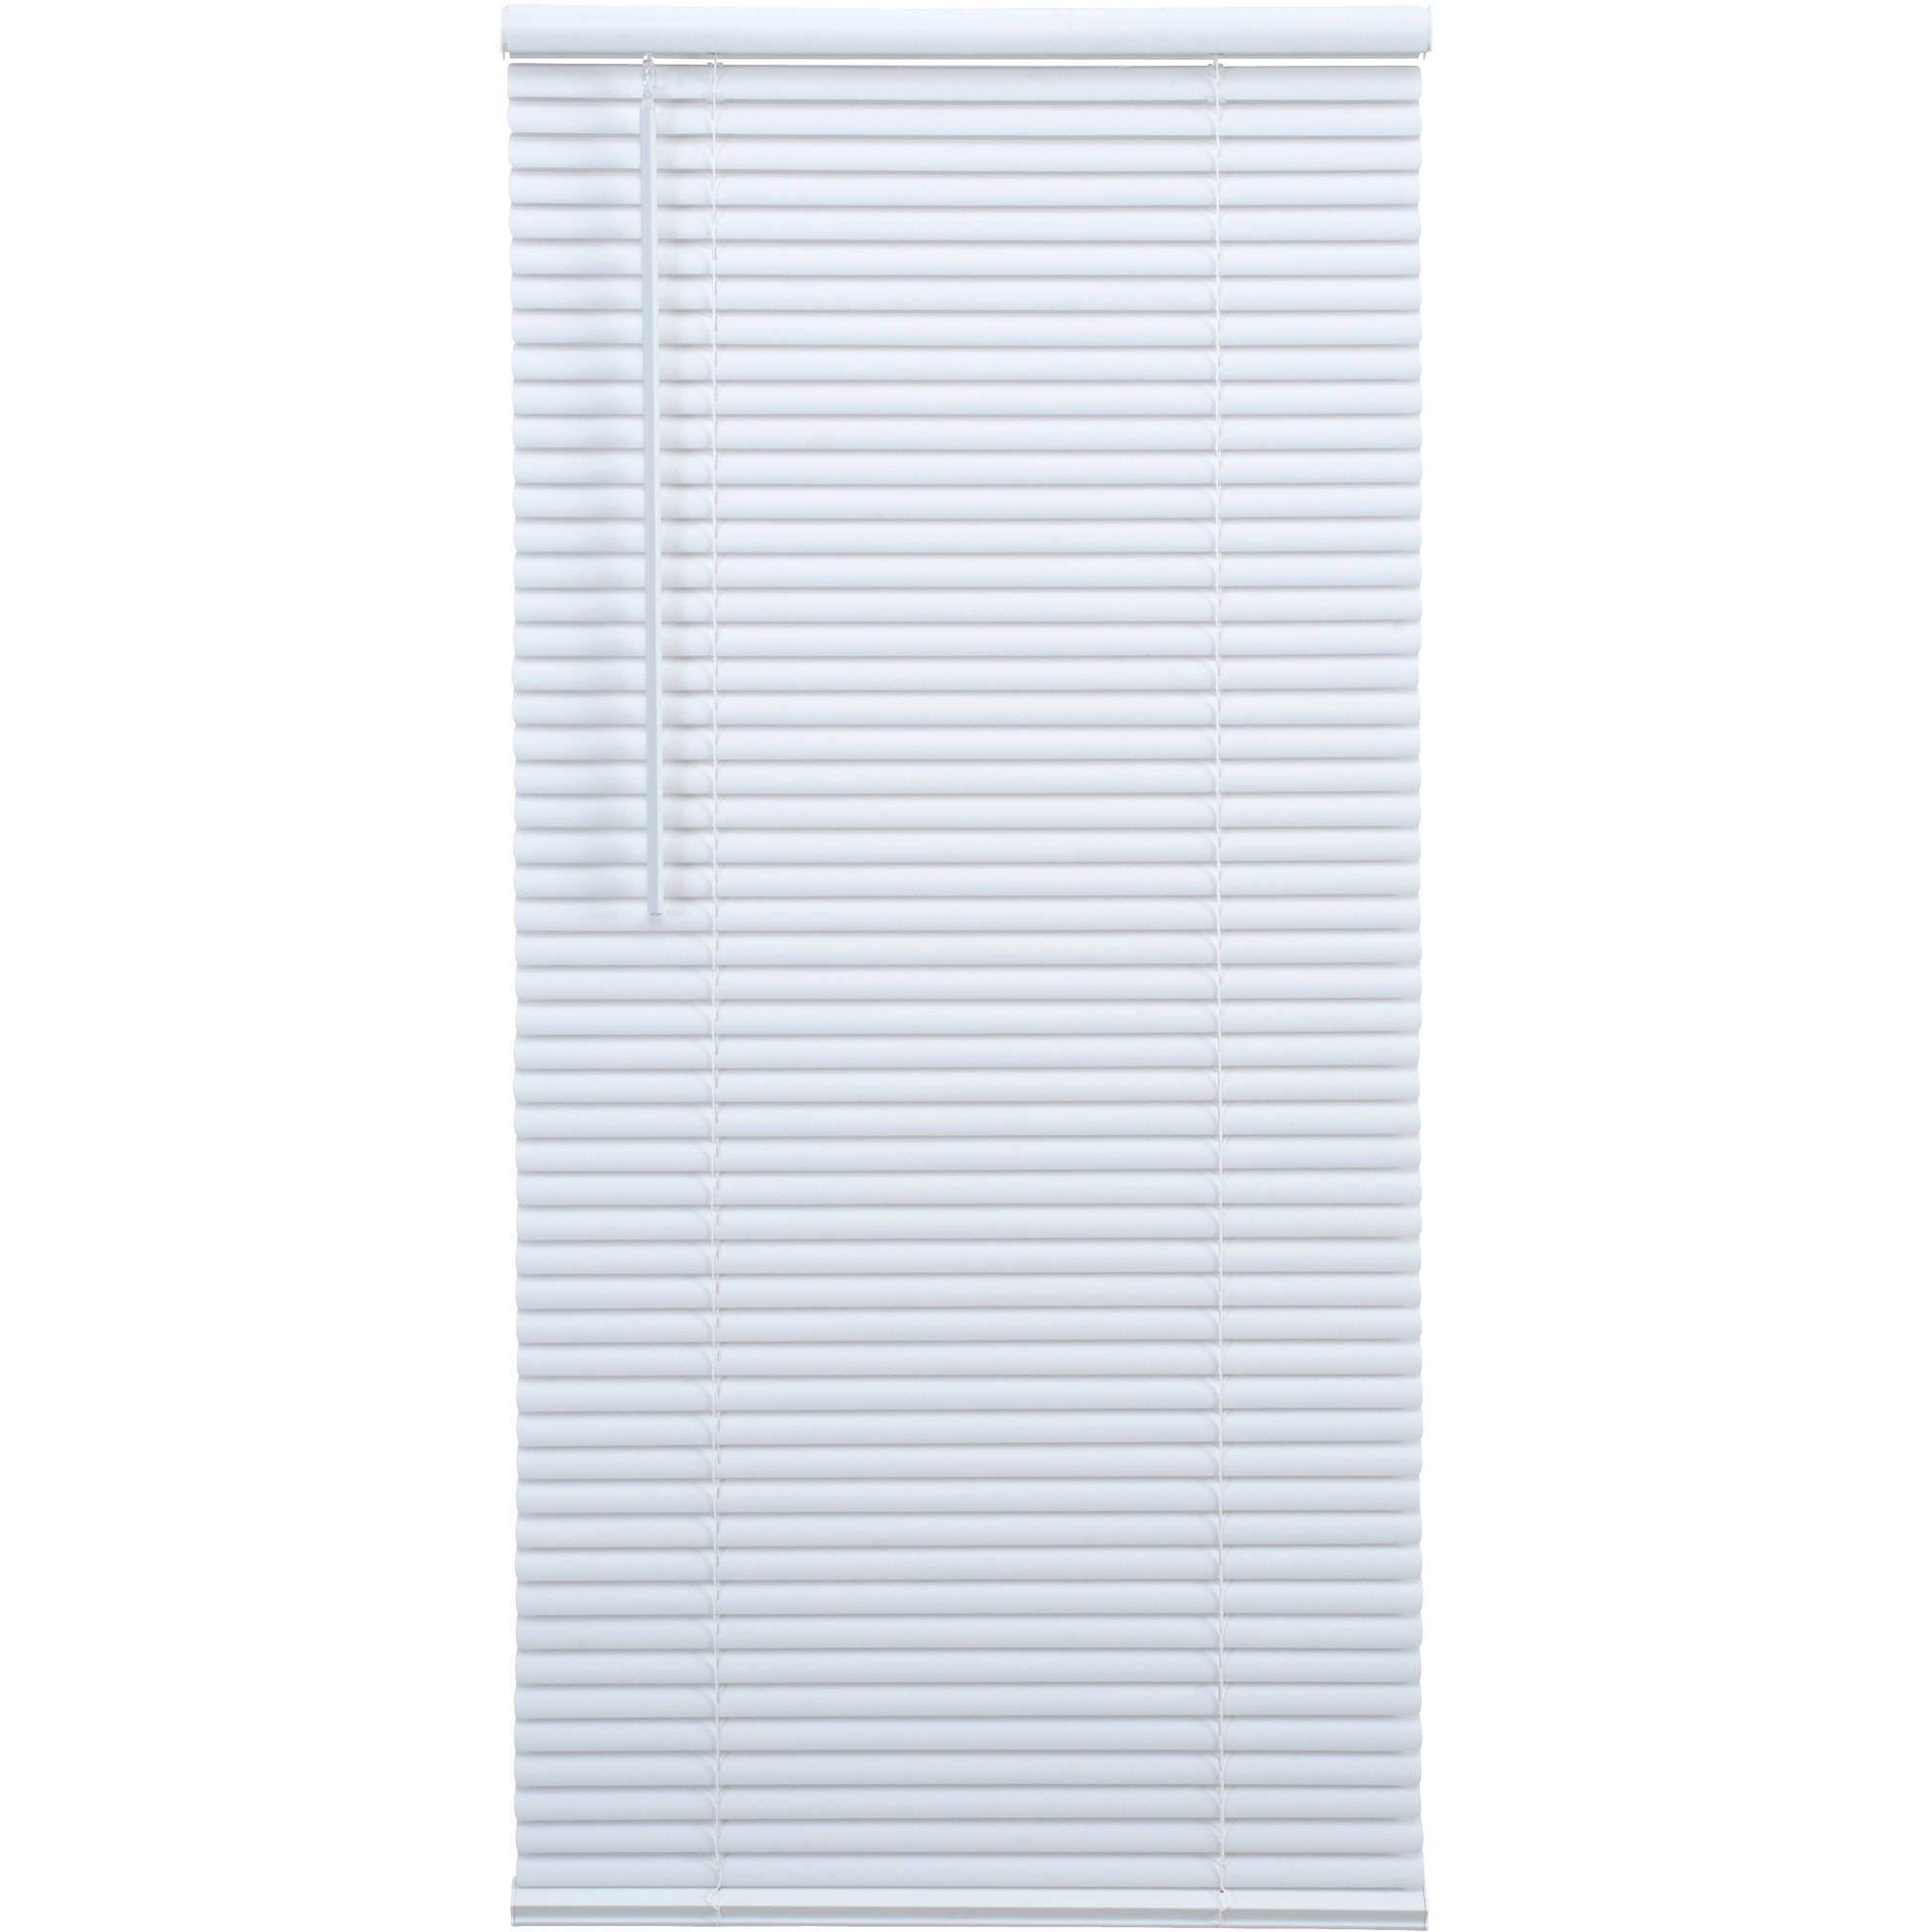 depot best the vertical blinds tips parts bali decor review levolor bamboo home curtains cellular shades window